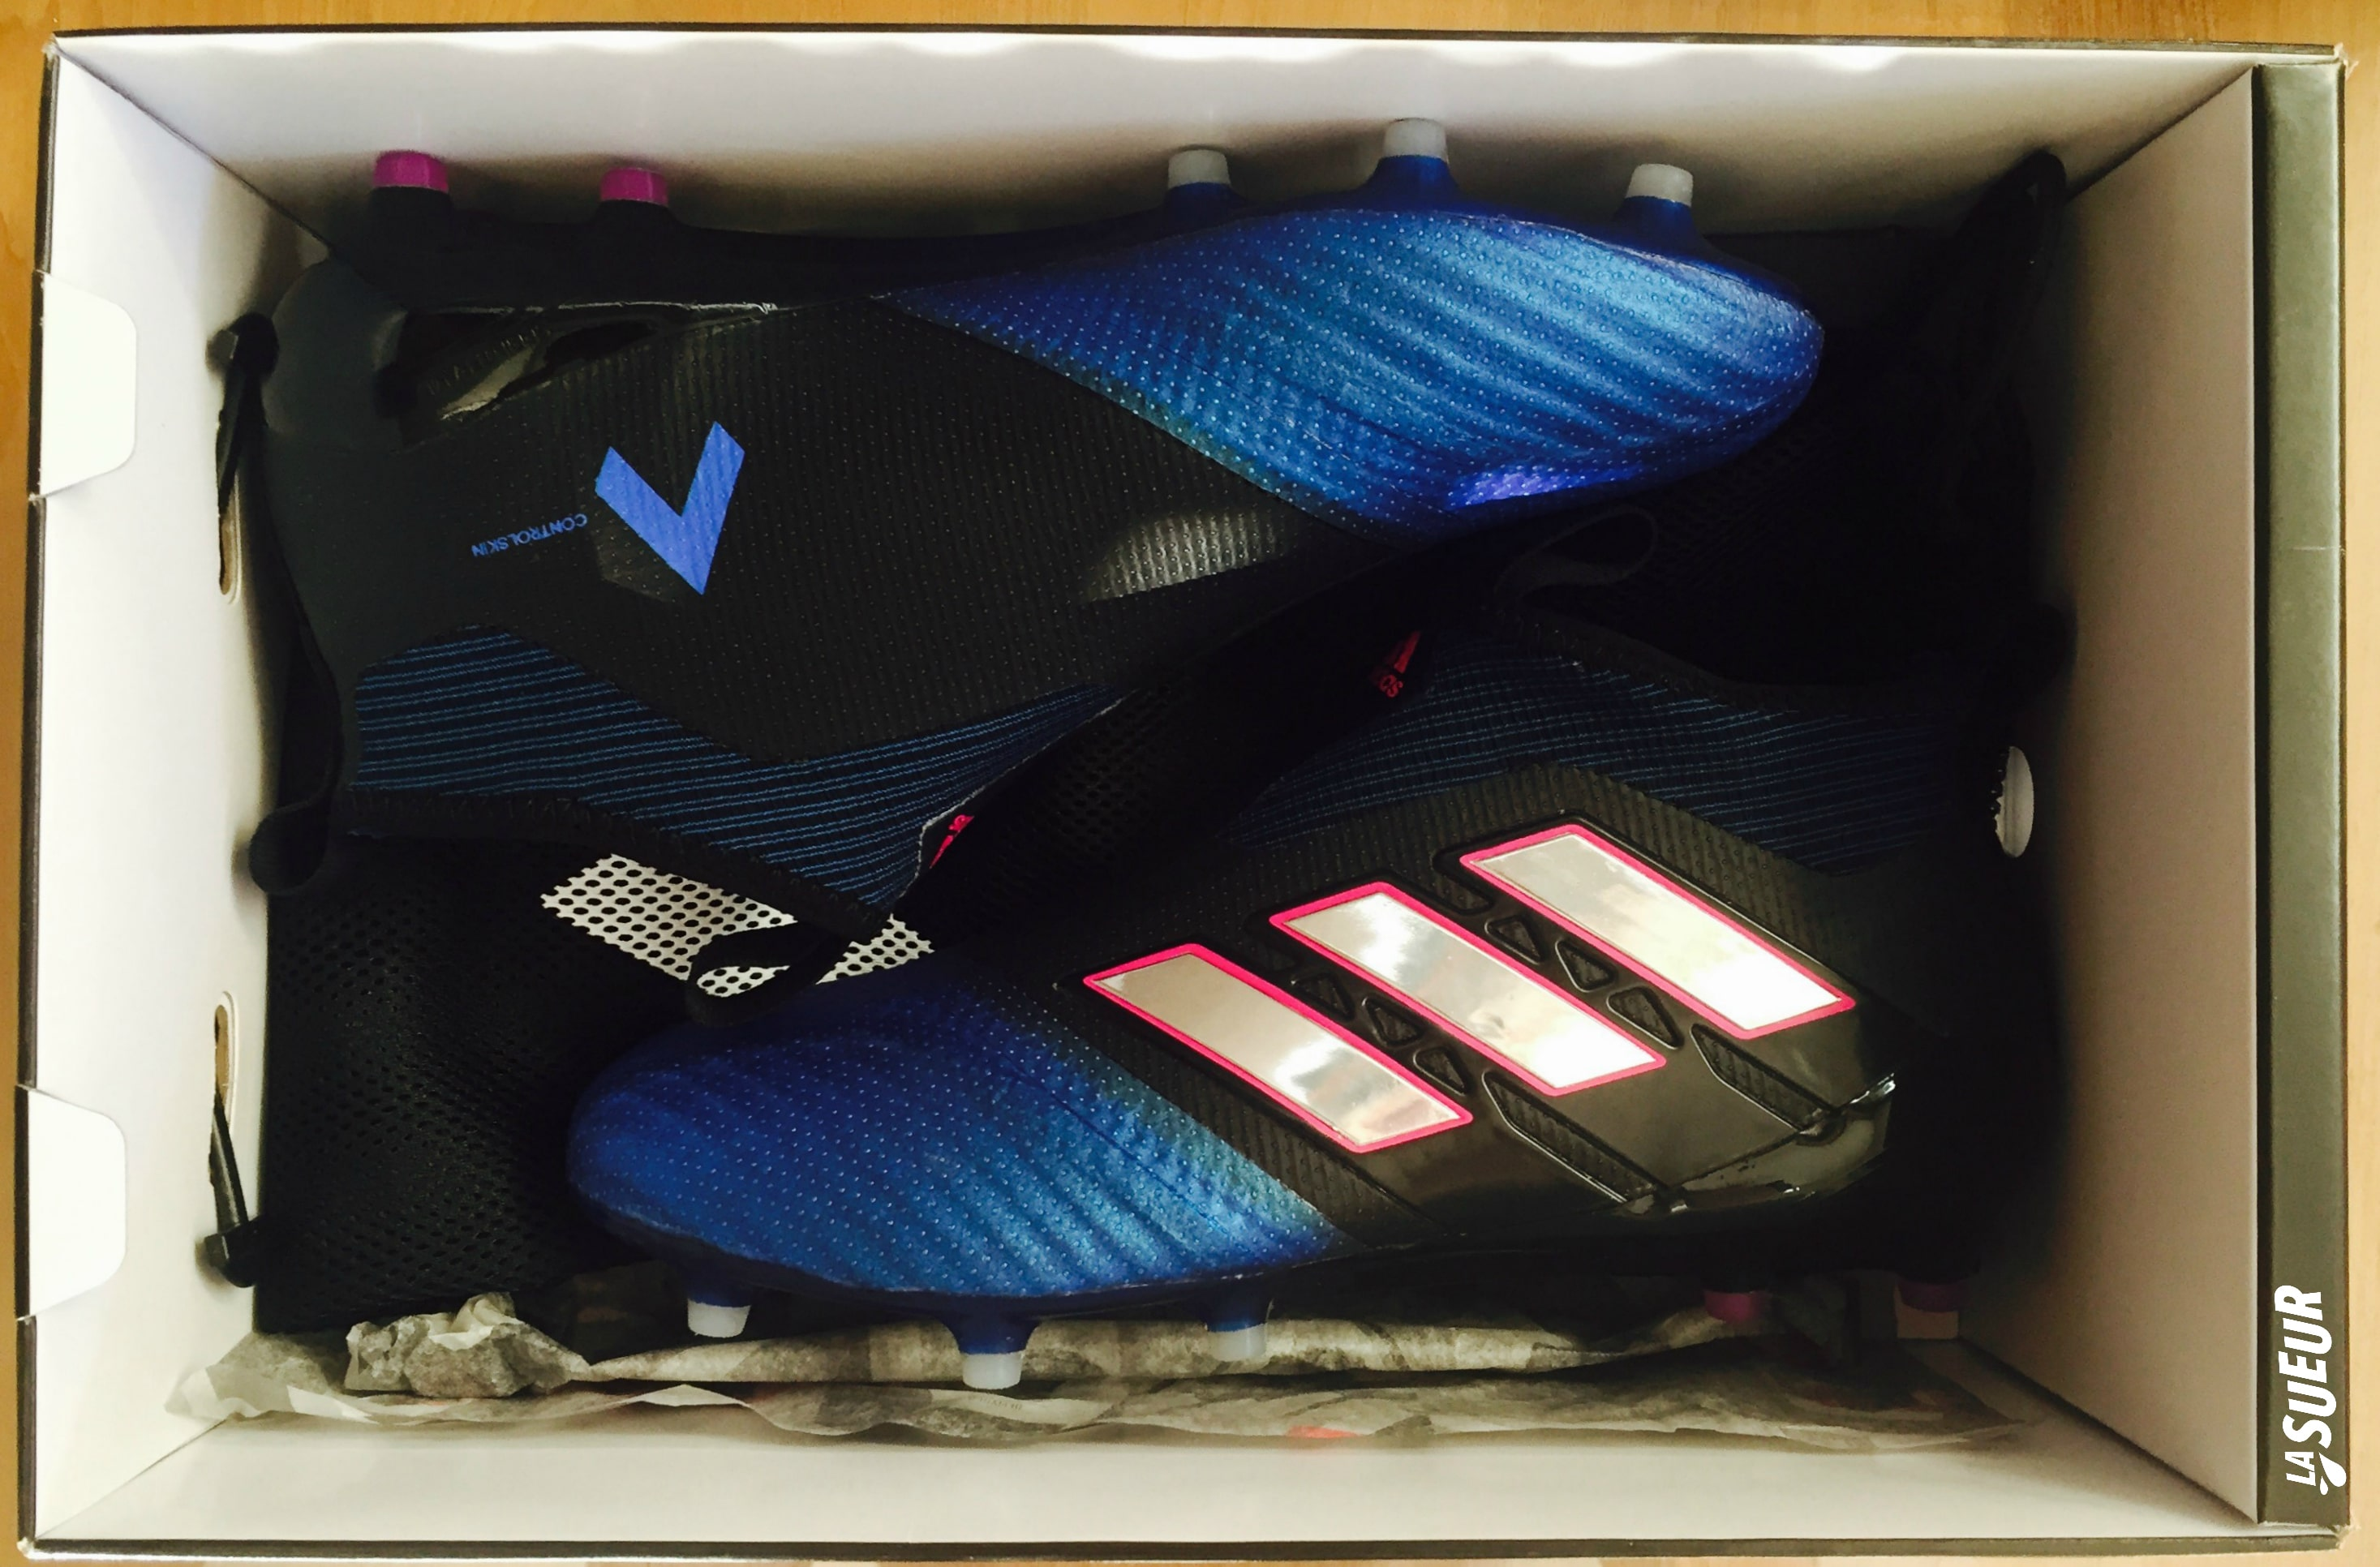 Test - Adidas Ace 17+ Purecontrol Blue Blast